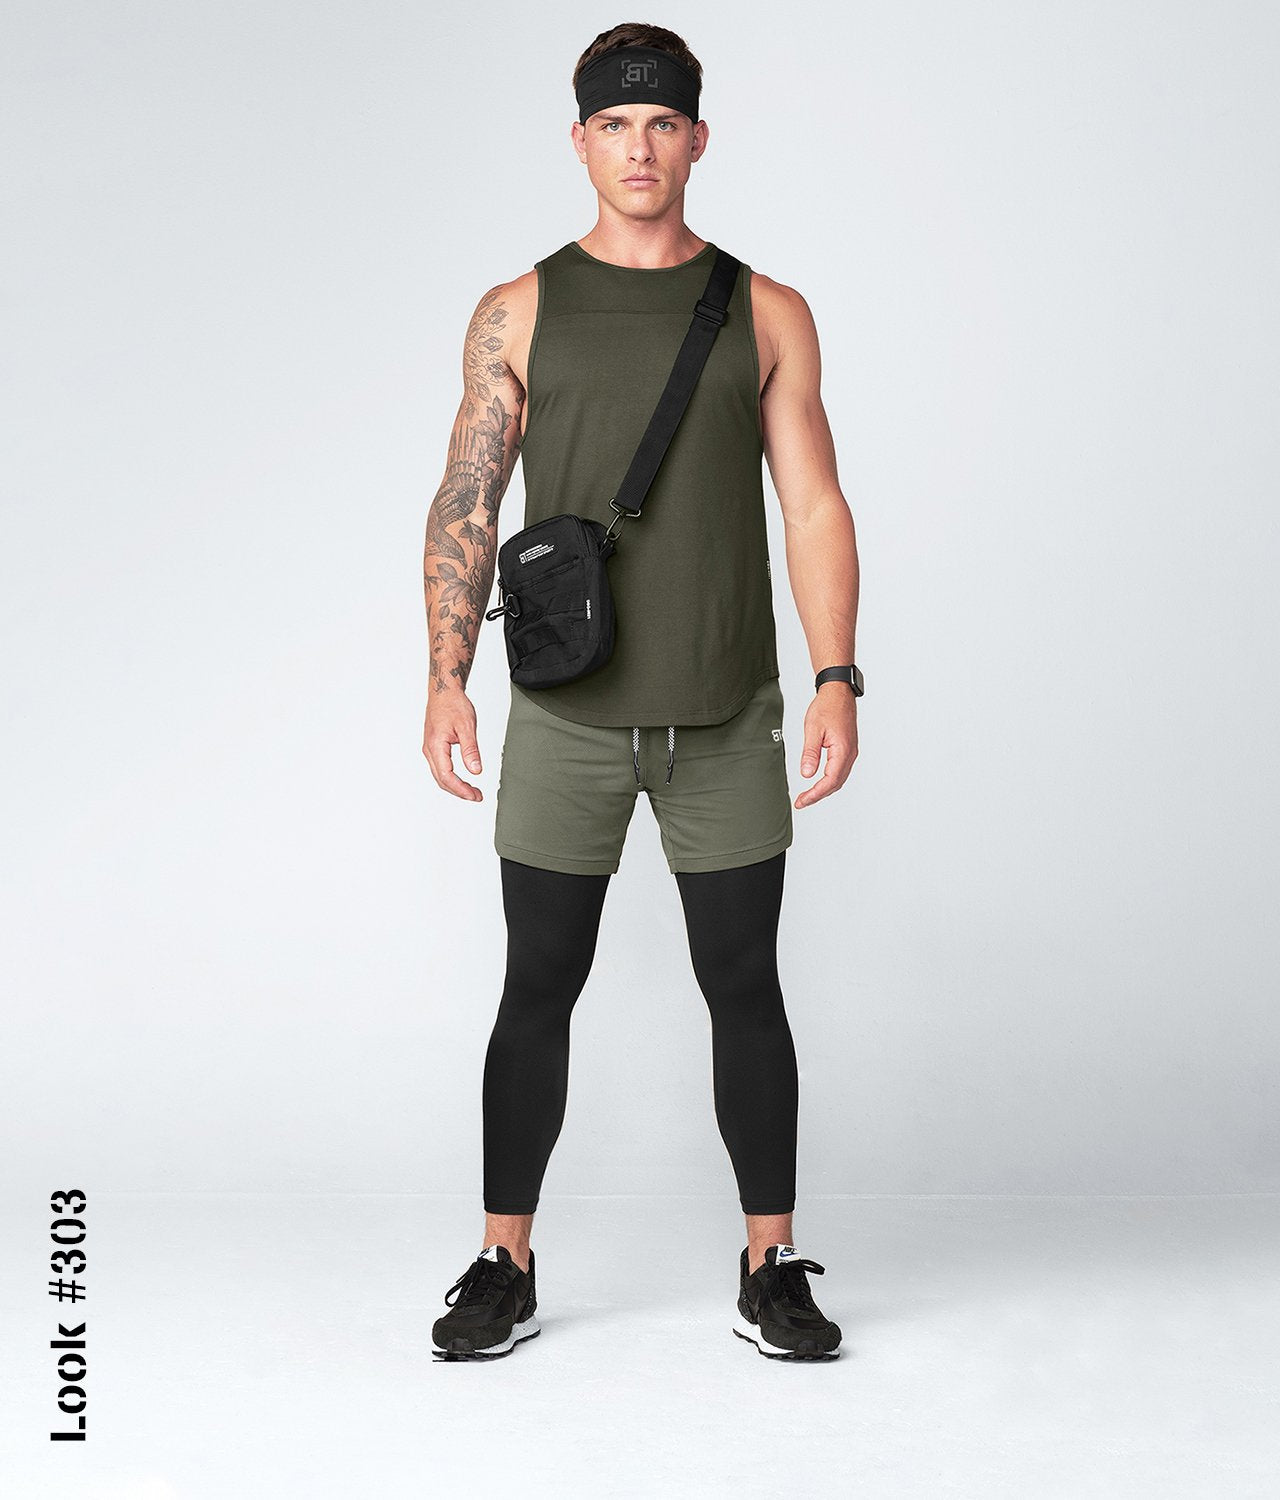 Born Tough United Kingdom Core Fit Signature Blend Army Green Gym Workout Tank Top for Men